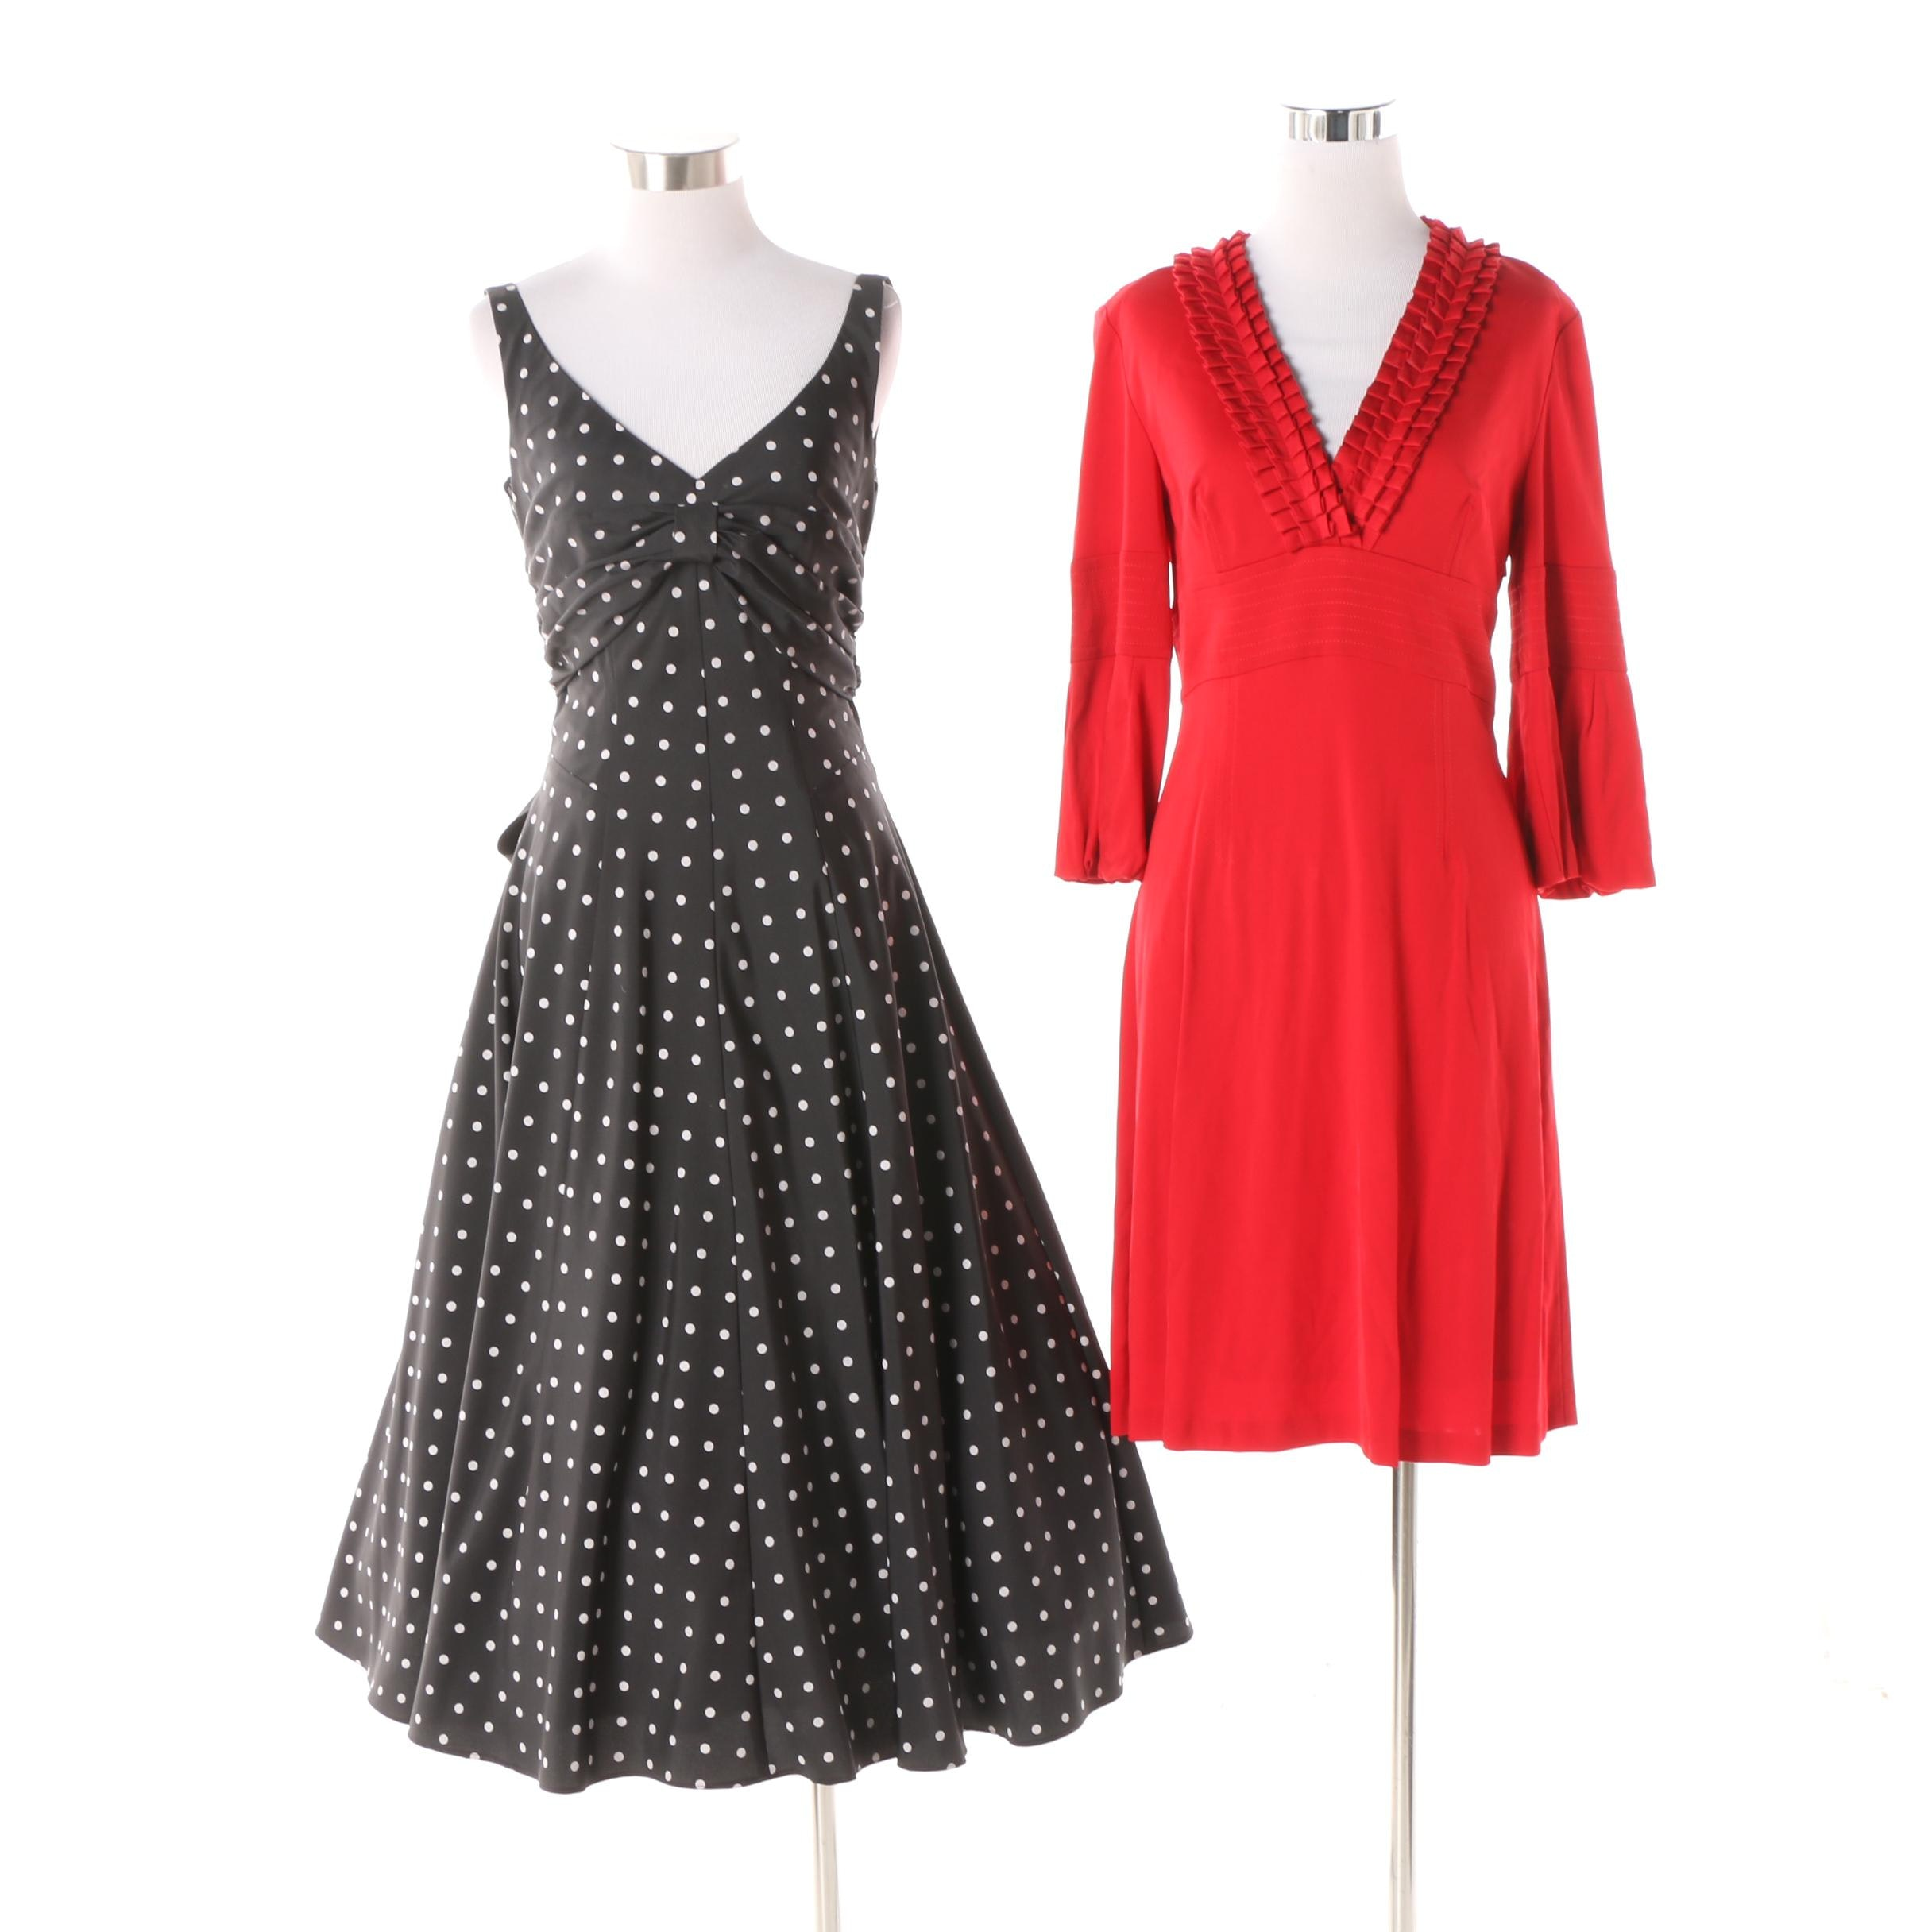 Karen Millen of England Red Sheath Dress and Night Way Polka Dot Dress